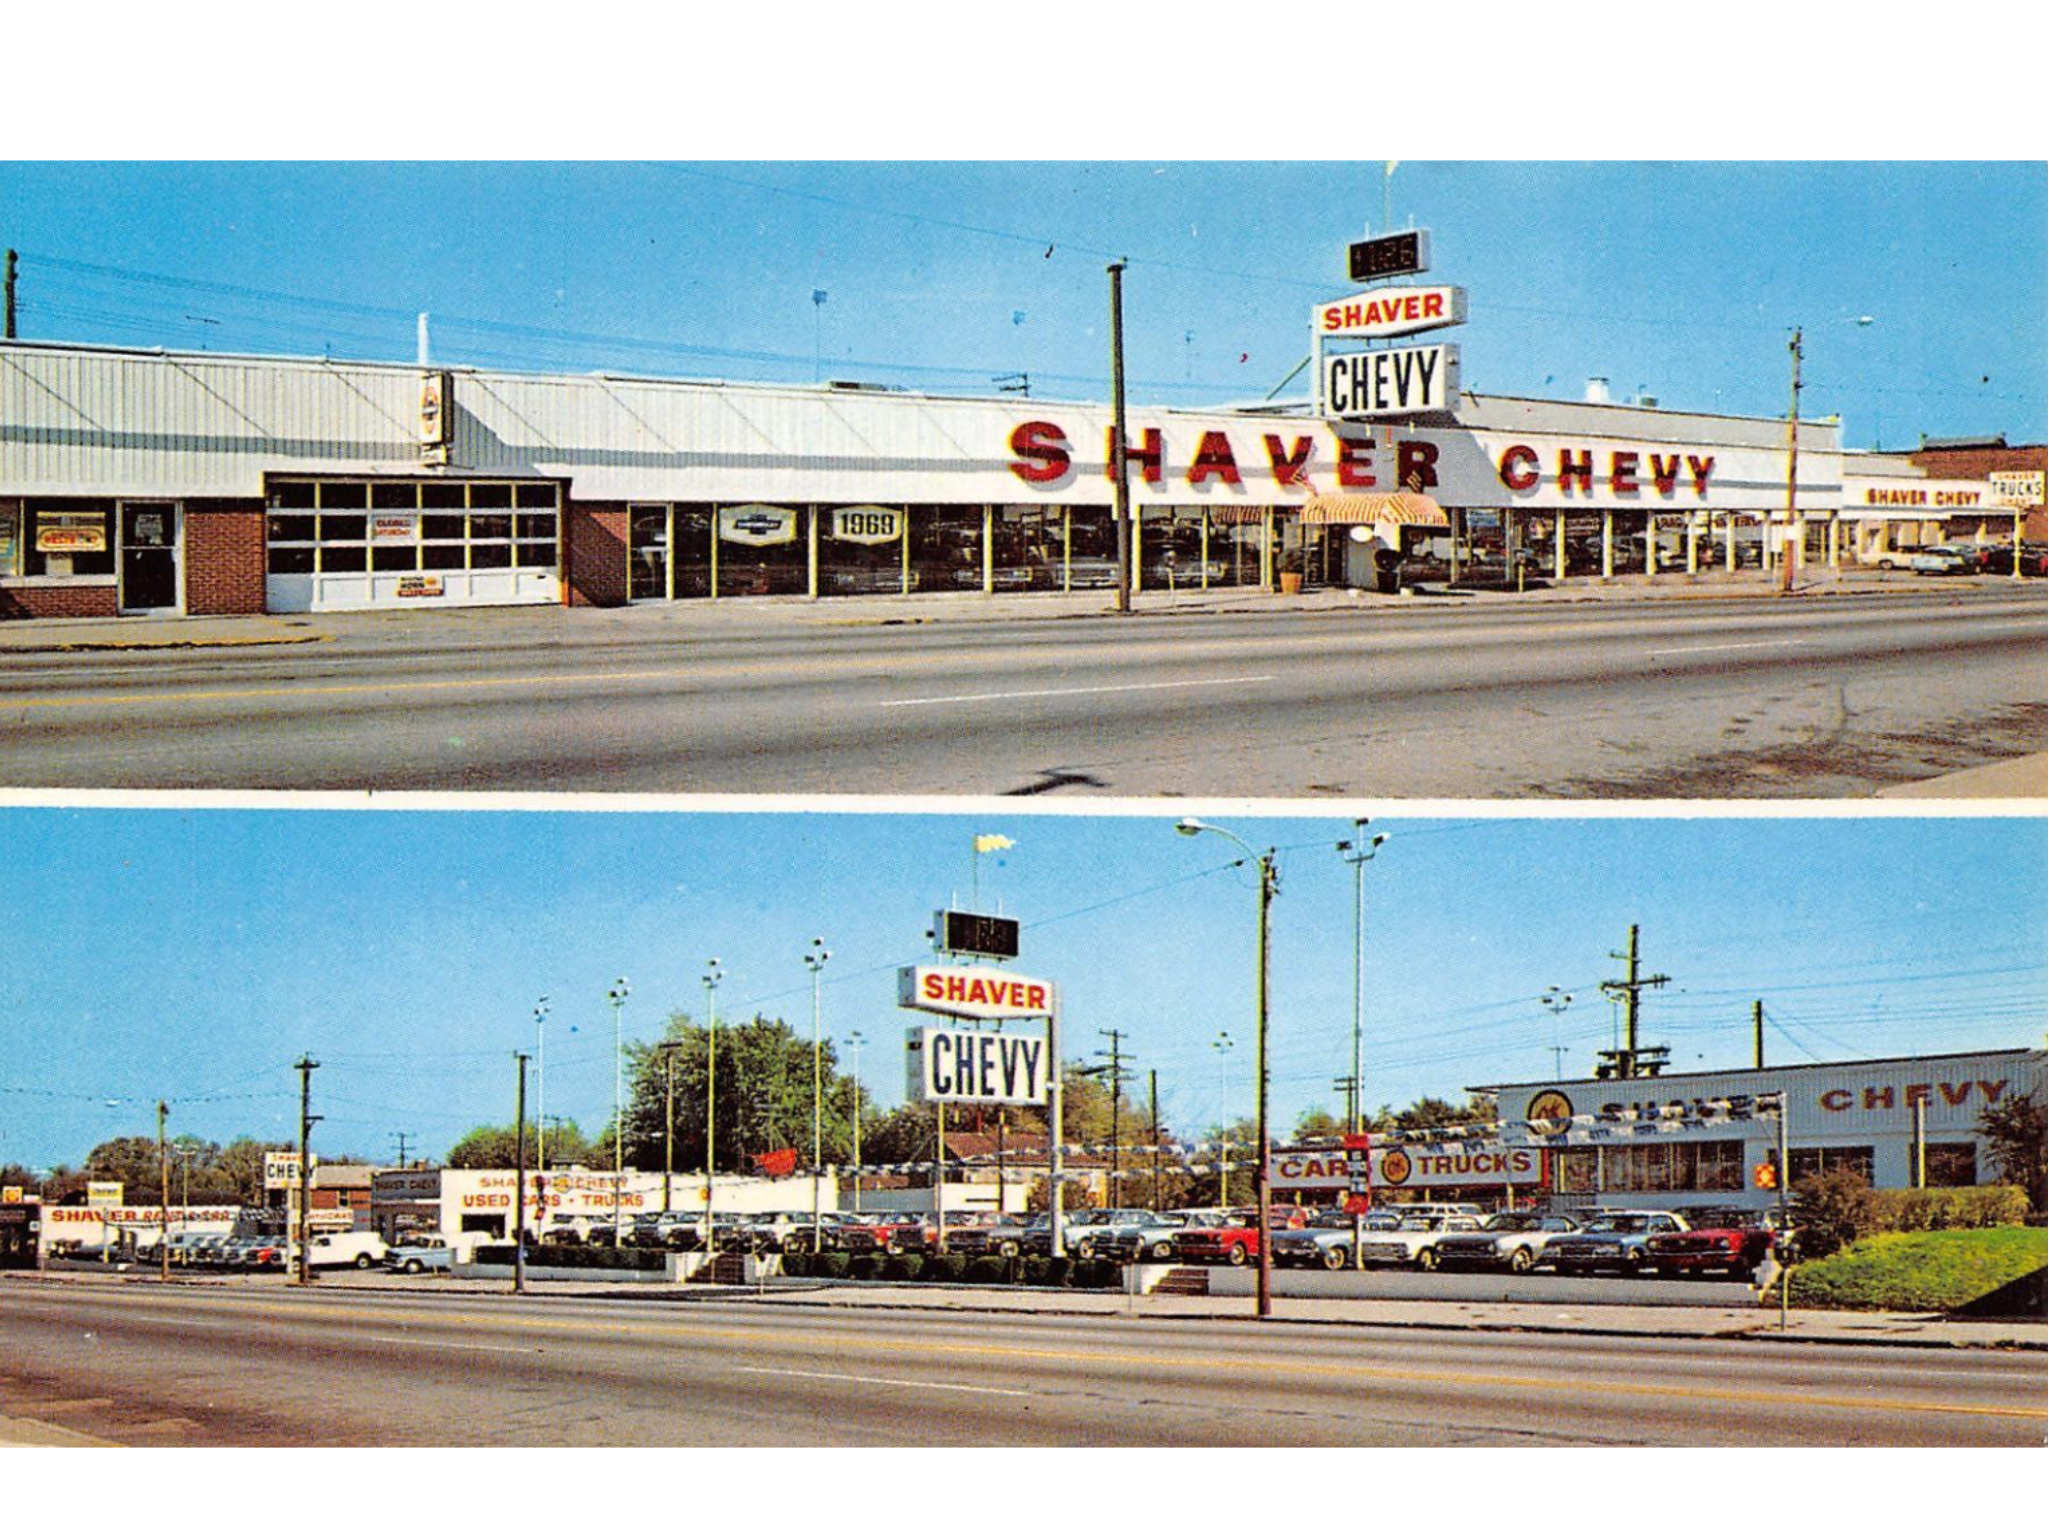 Shaver Chevrolet Dealership Gary Indiana Chevrolet Dealership